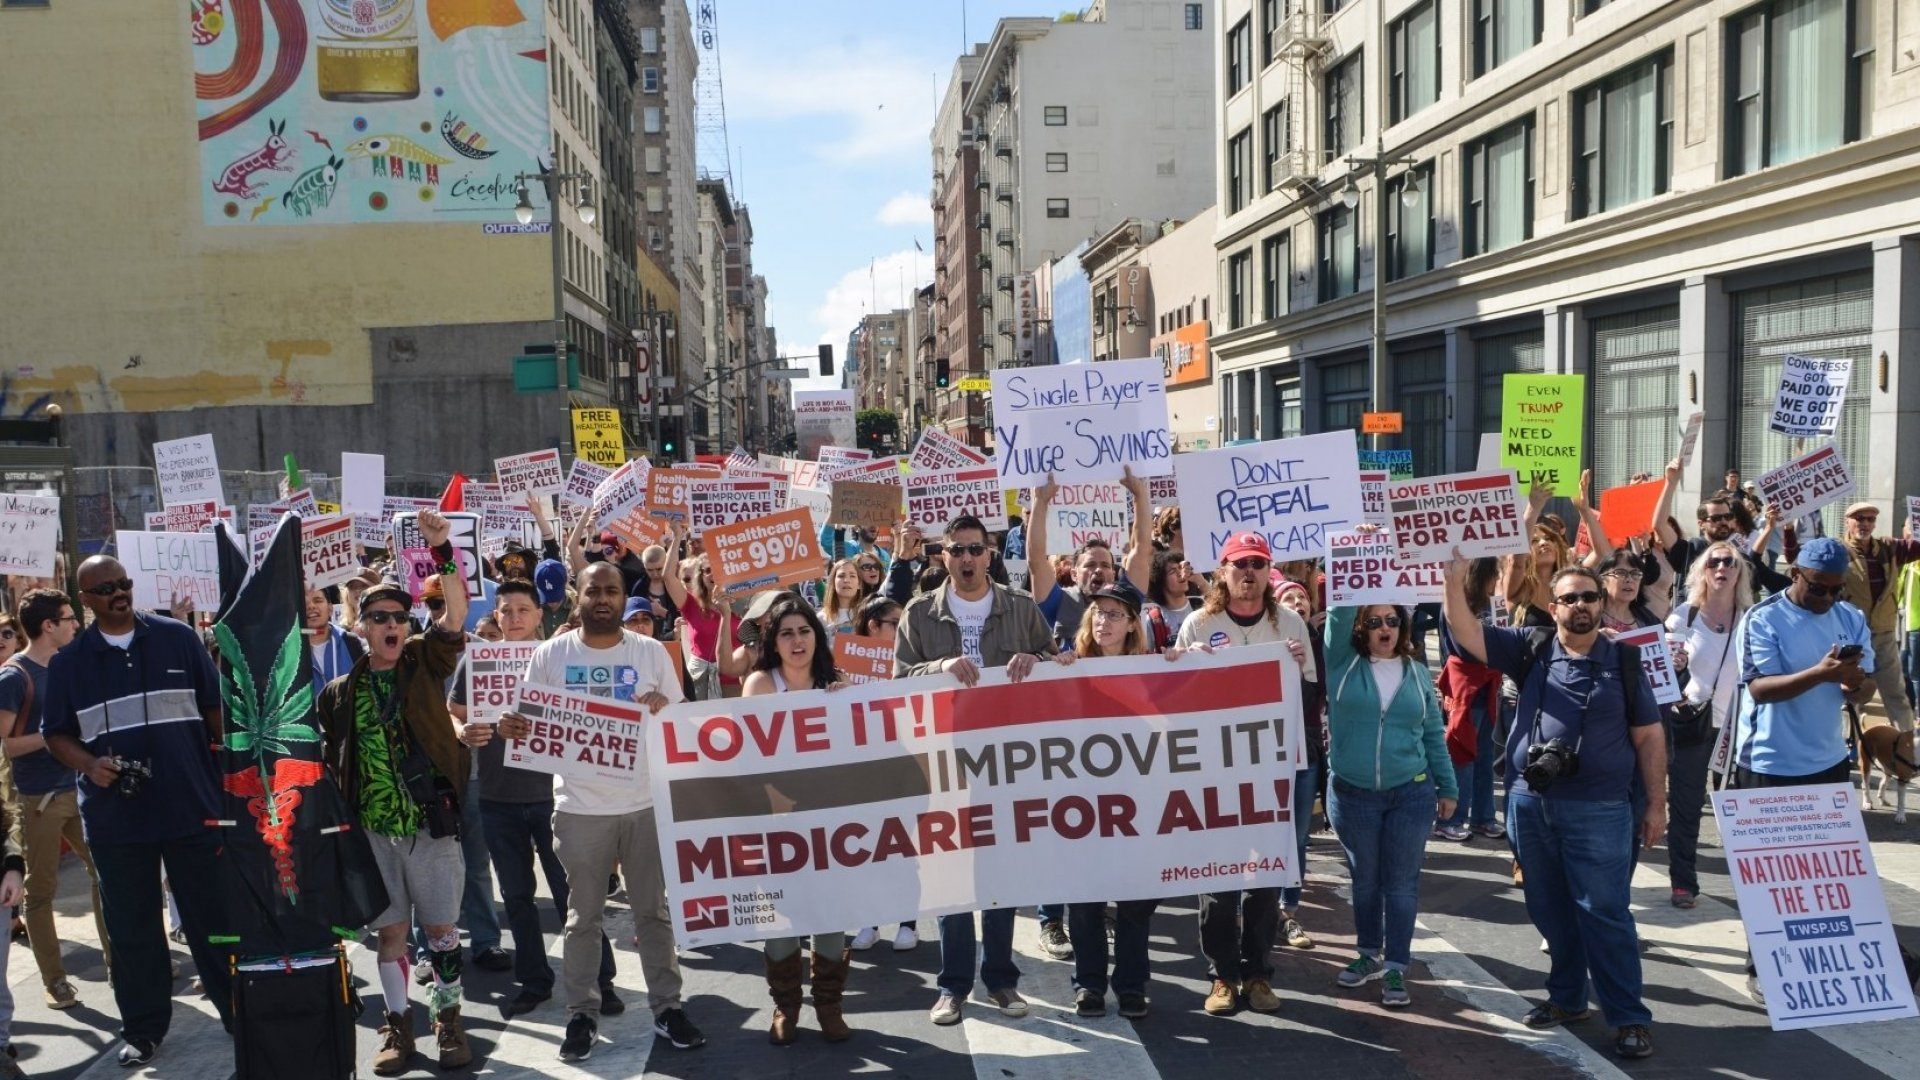 Demonstrators march and rally to protest against President Donald Trump's and the GOP's race to repeal and replace the Affordable Care Act (aka Obamacare) at Los Angeles, California, United States on February 4, 2017.